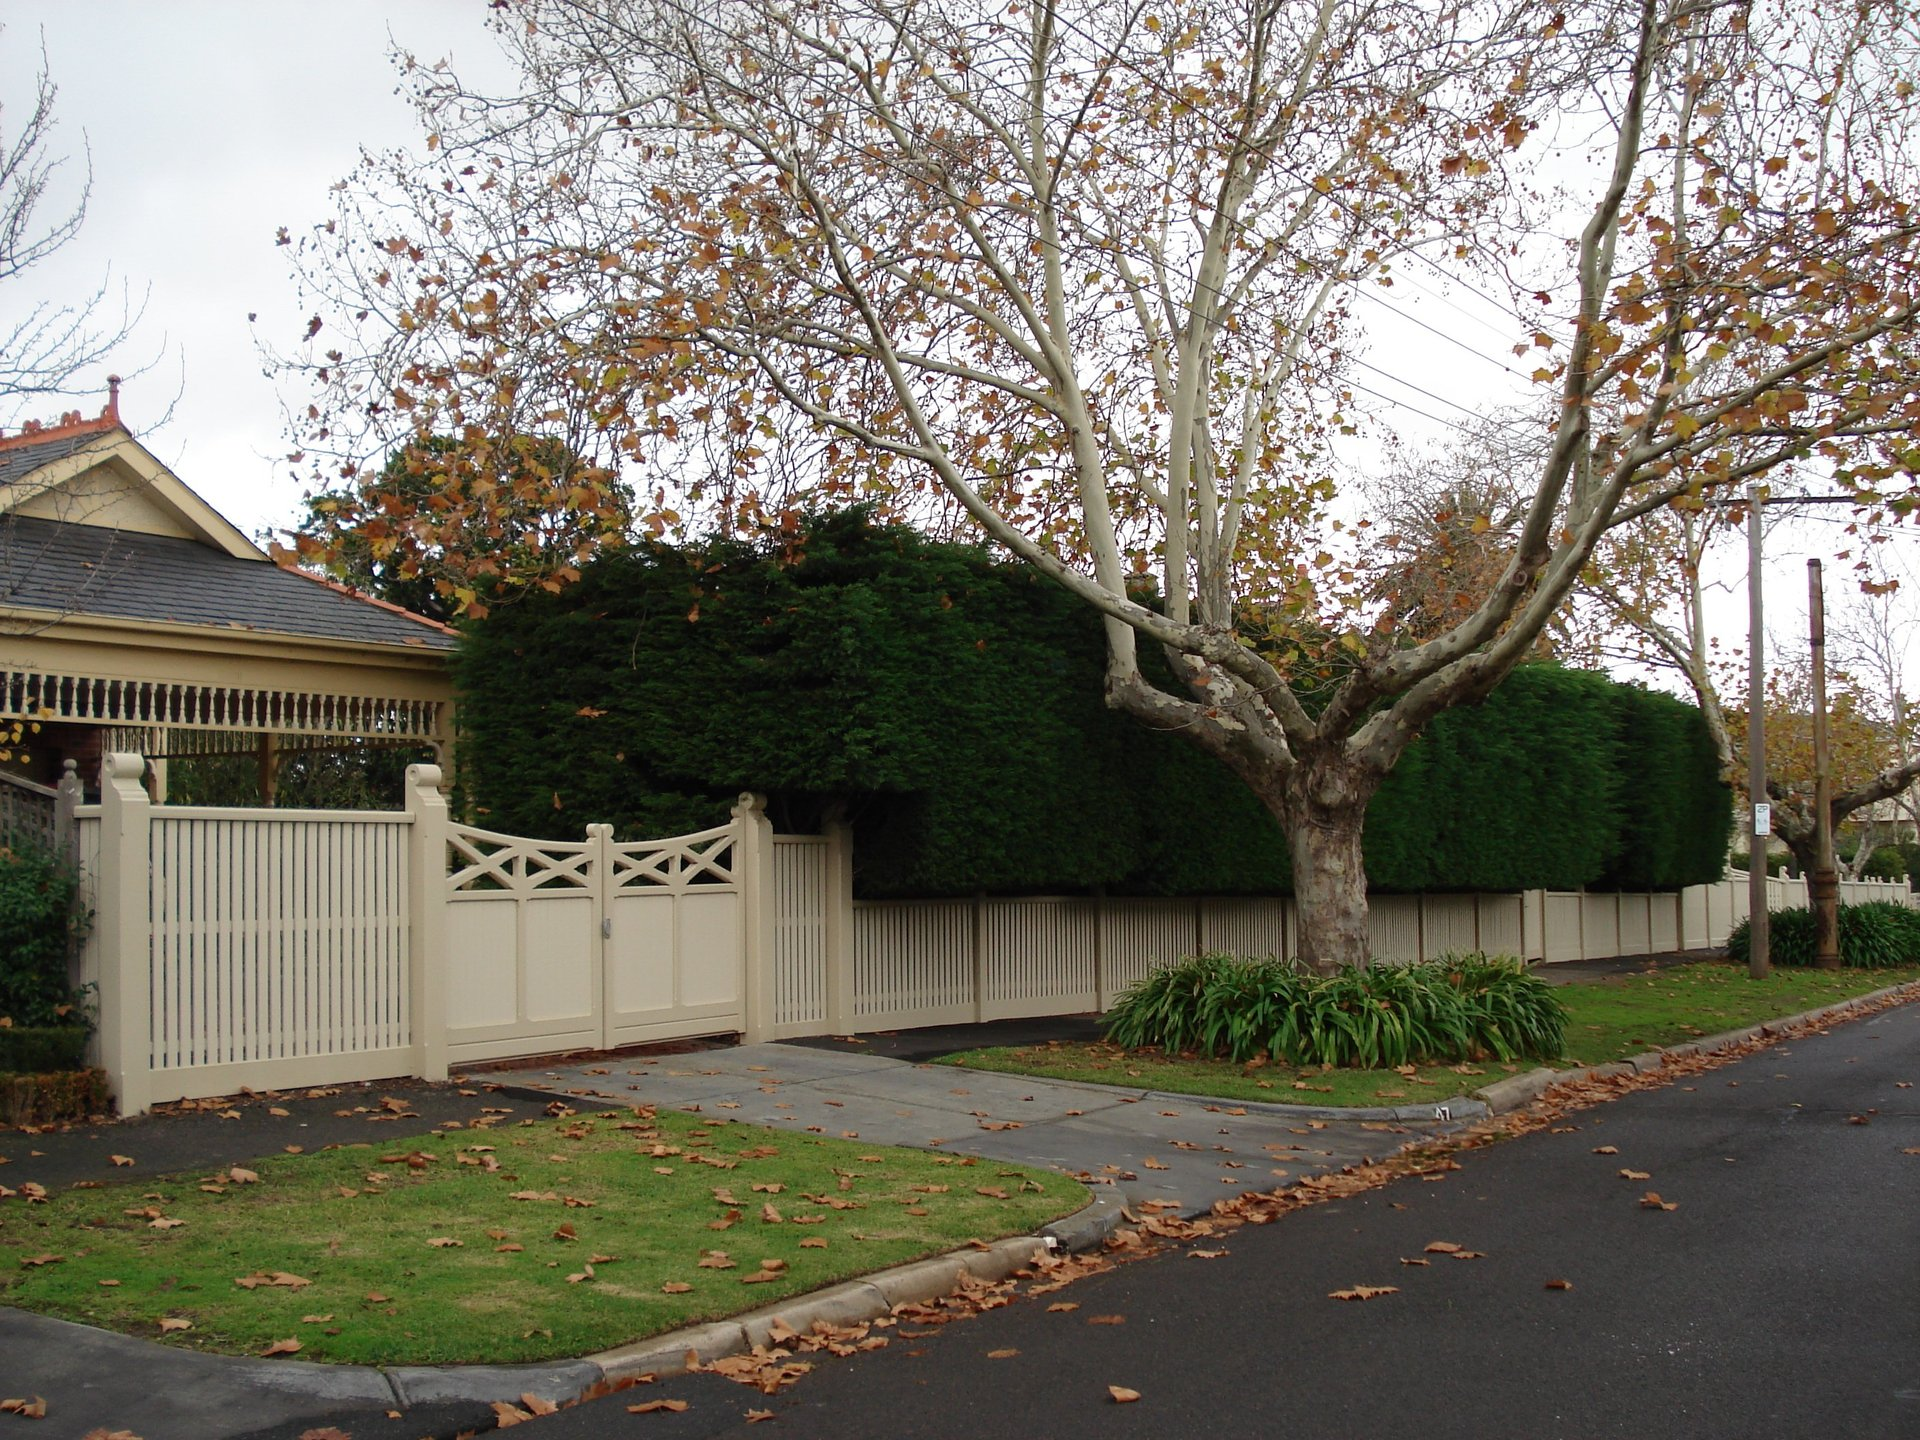 fencing around home